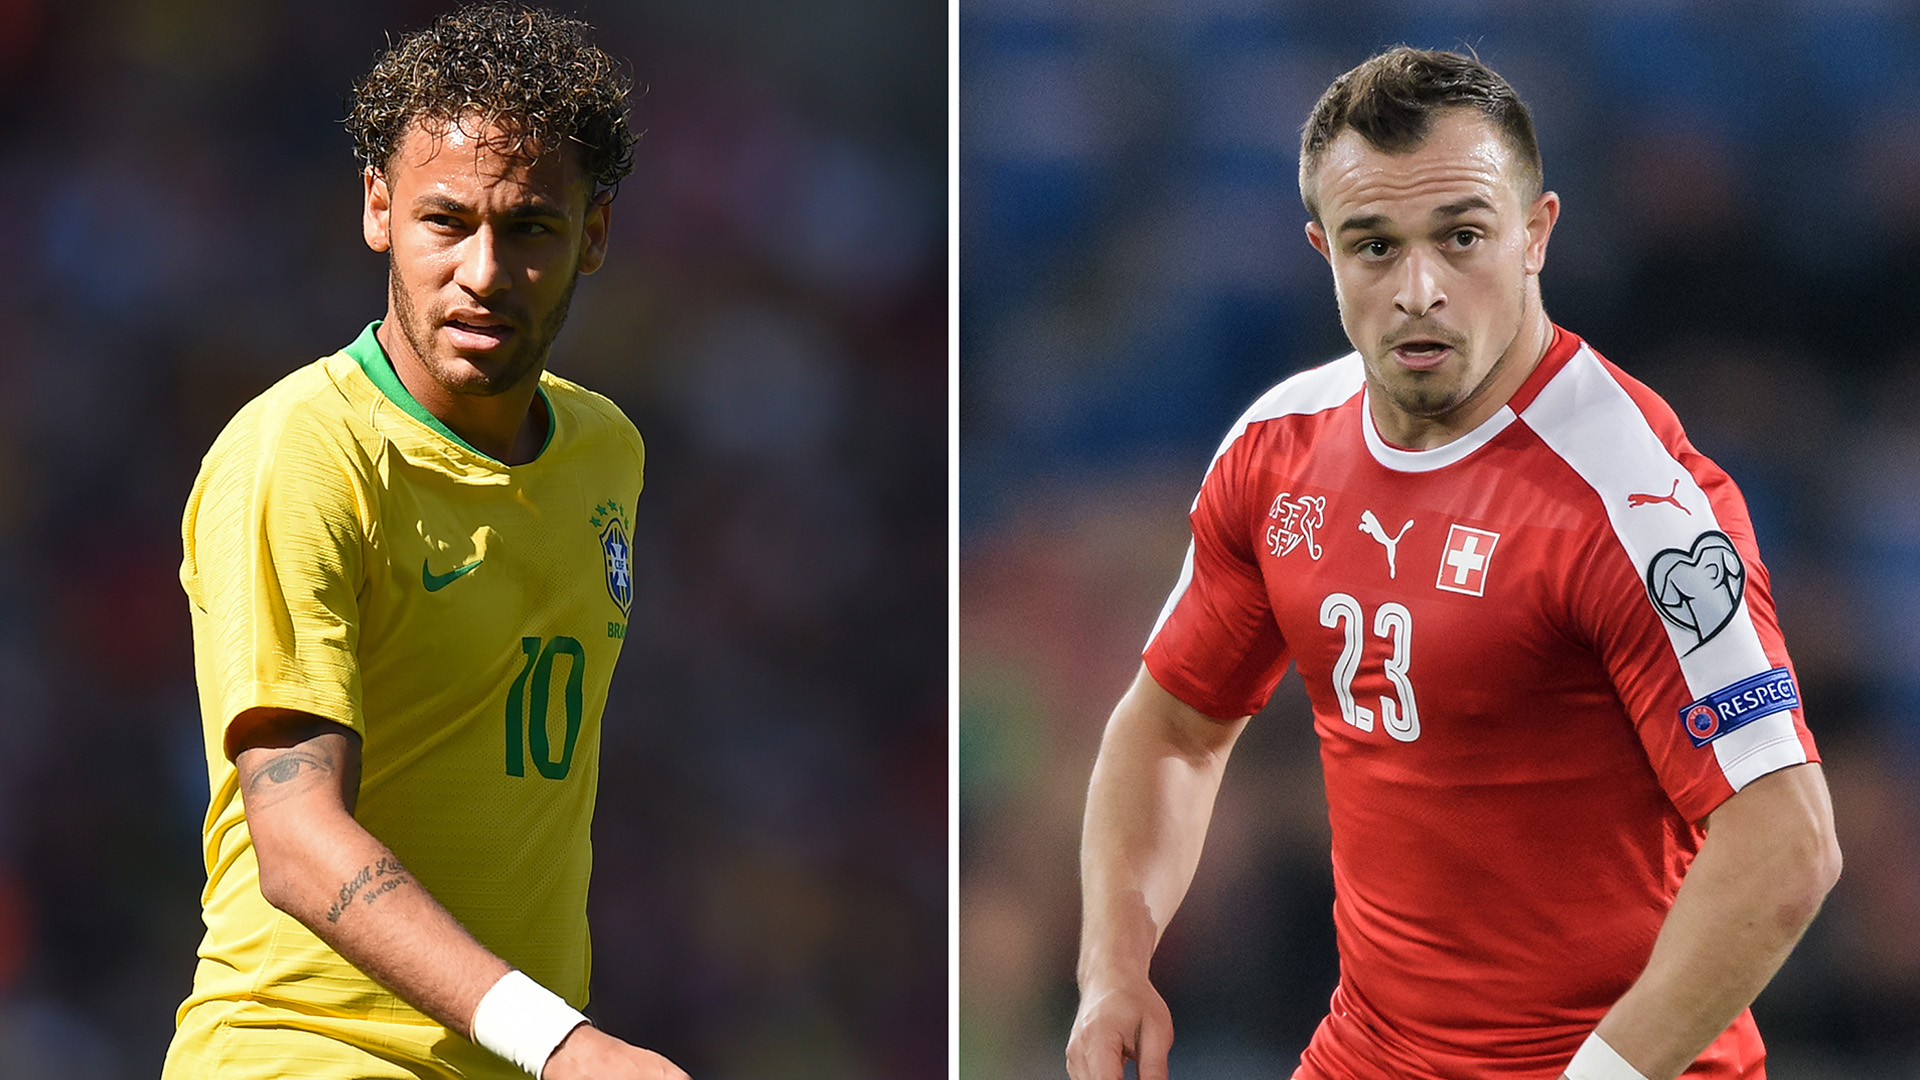 Brazil v Switzerland, 17 June 2018